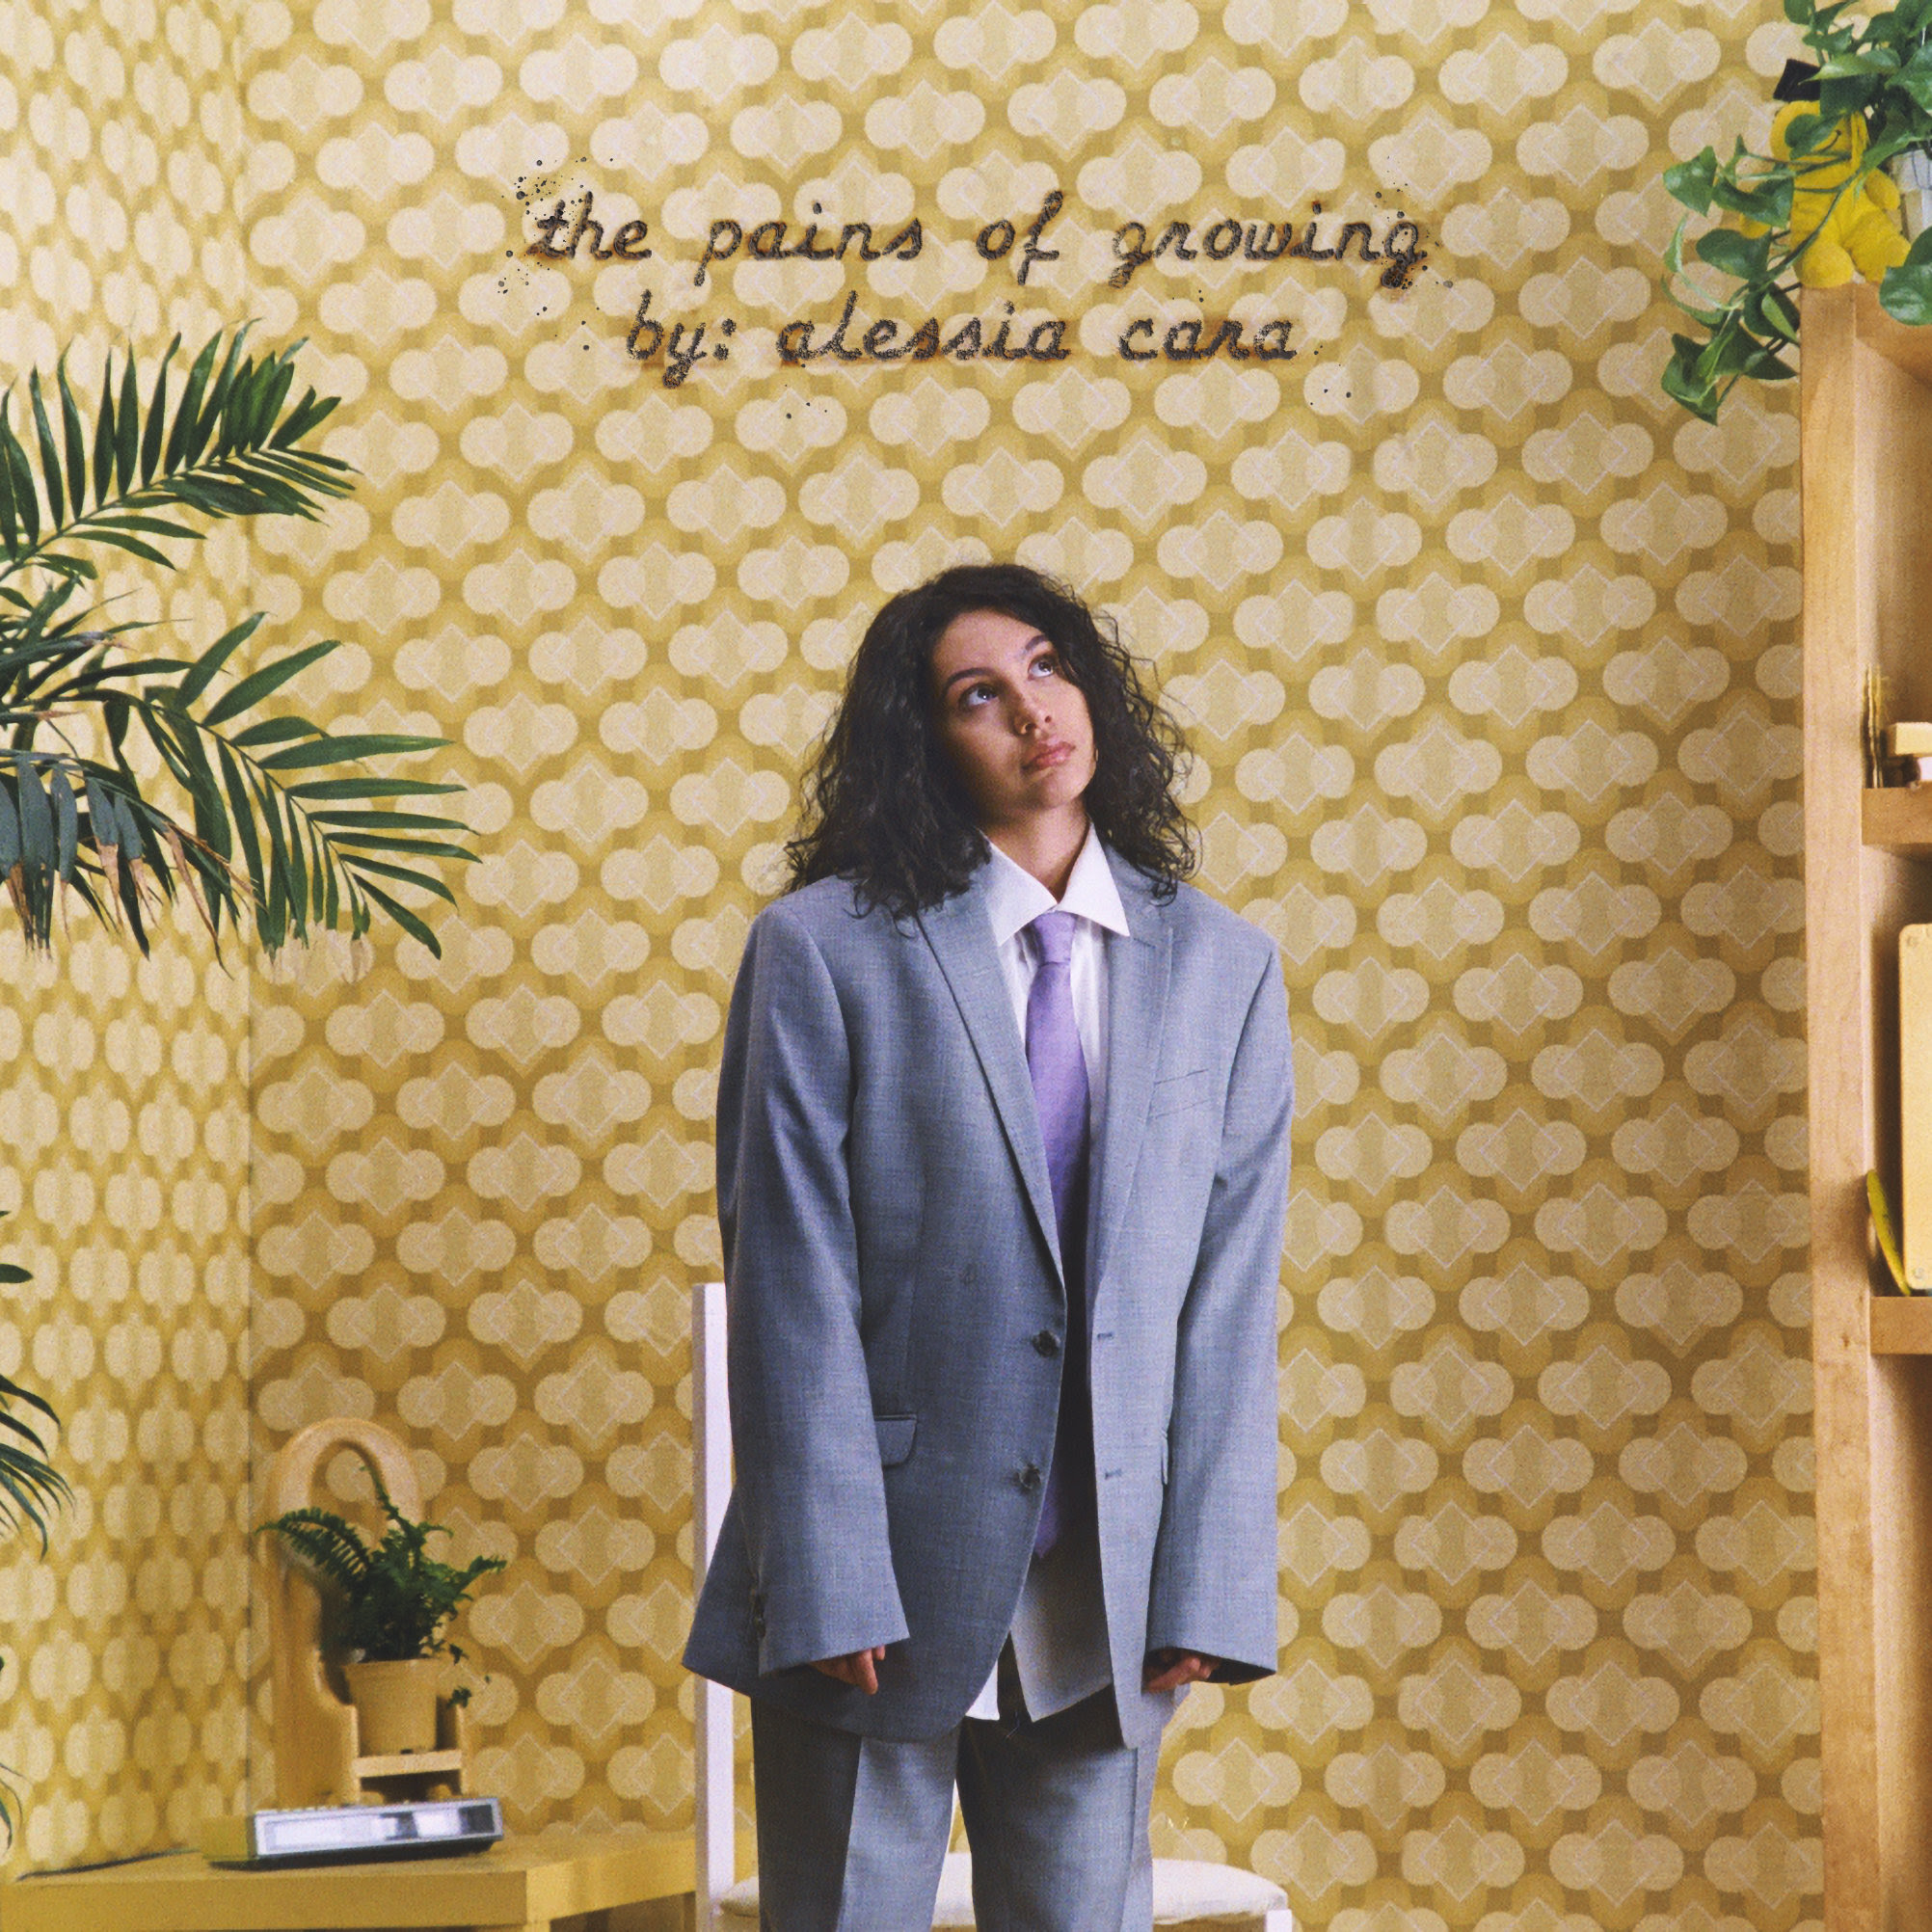 Album art for Alessia Cara's 'The Pains of Growing'. (Photo credit: Def Jam)